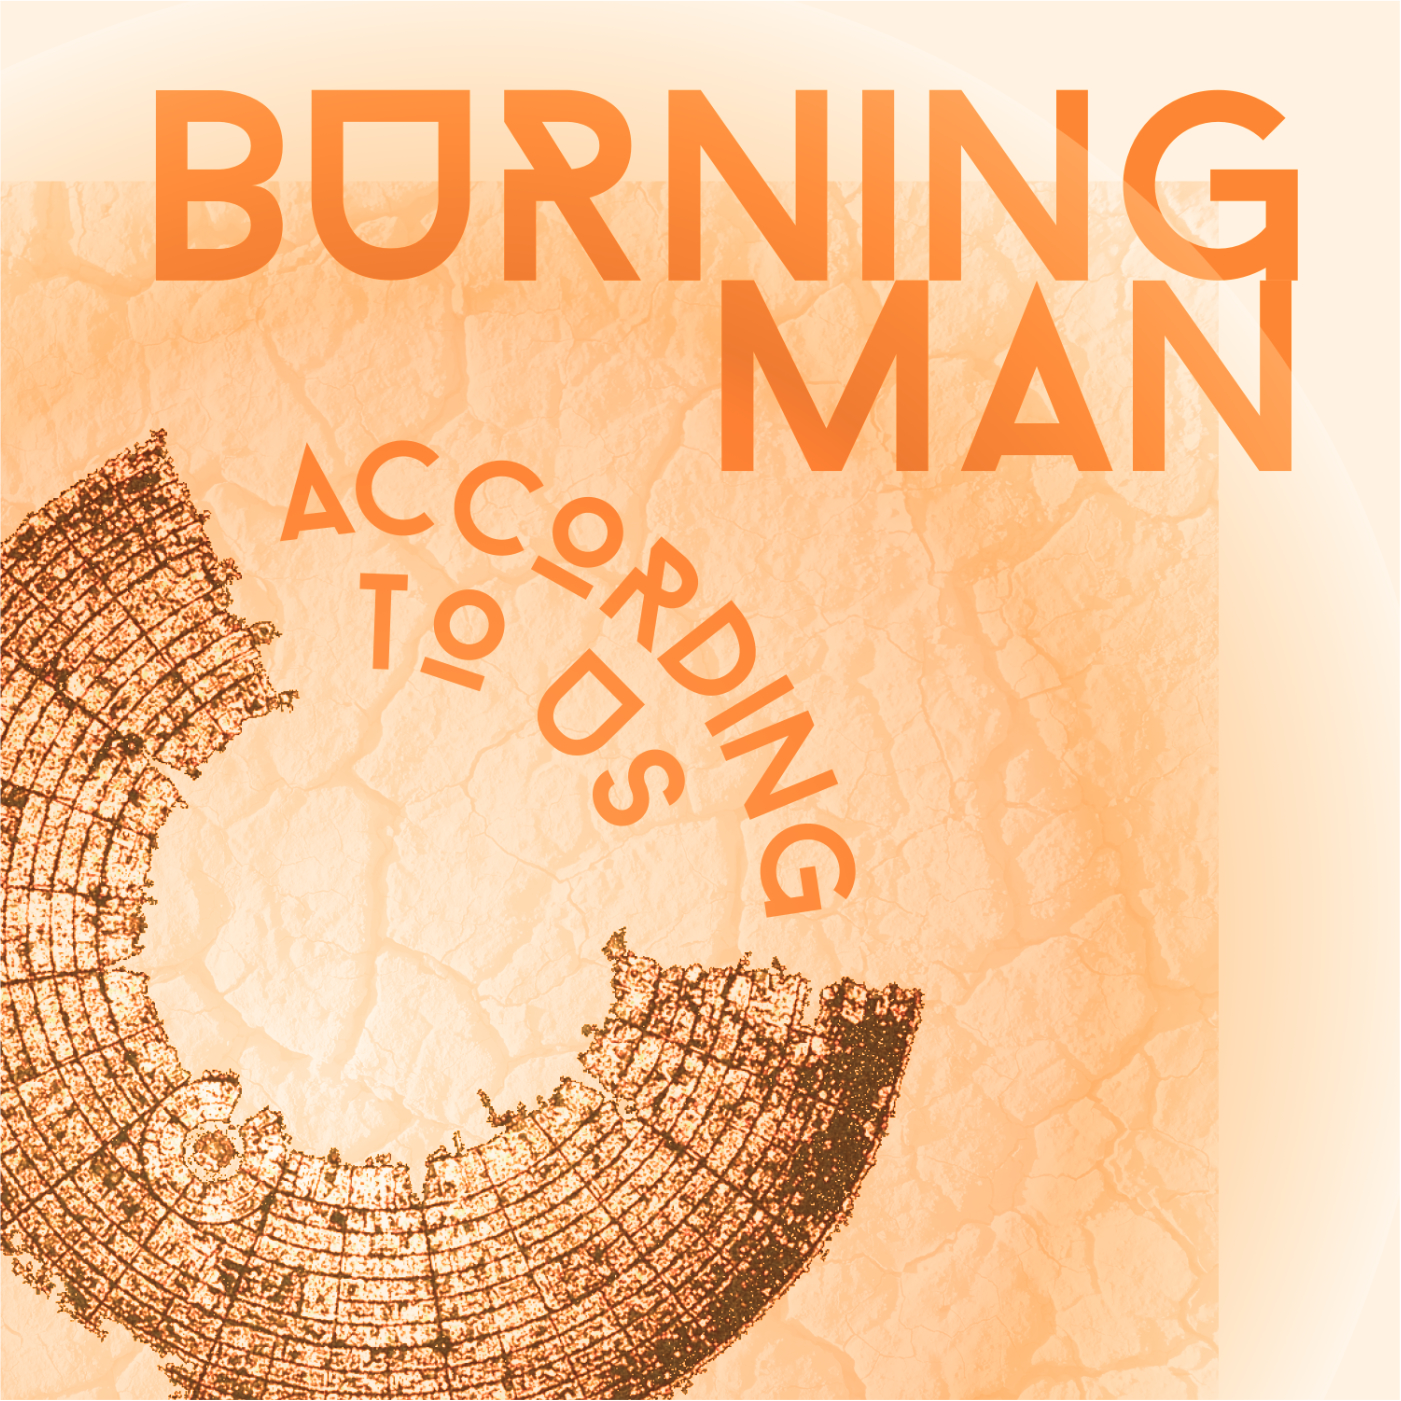 BURNING MAN ACCORDING TO US